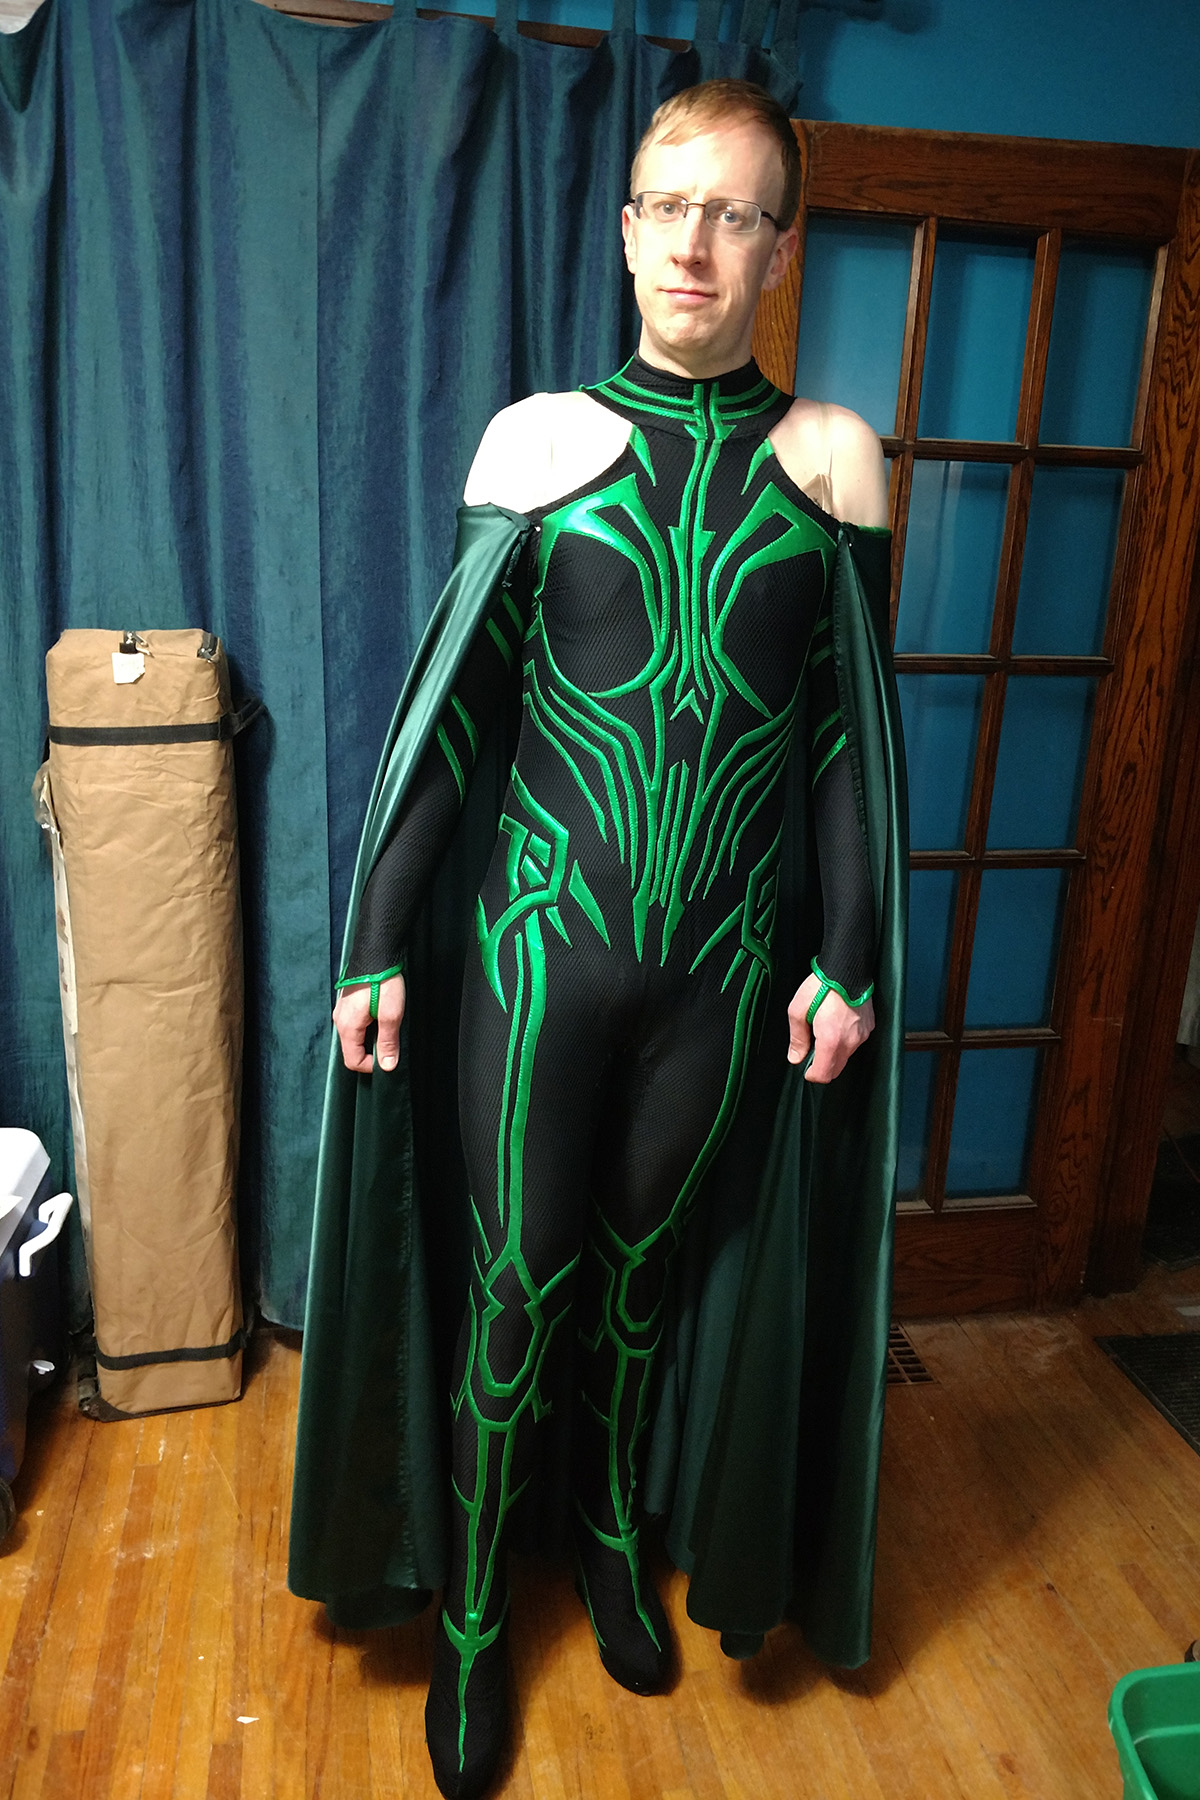 A front view of a blonde man wearing an MCU Hela costume.  This time, there is a long, full green cape attached.